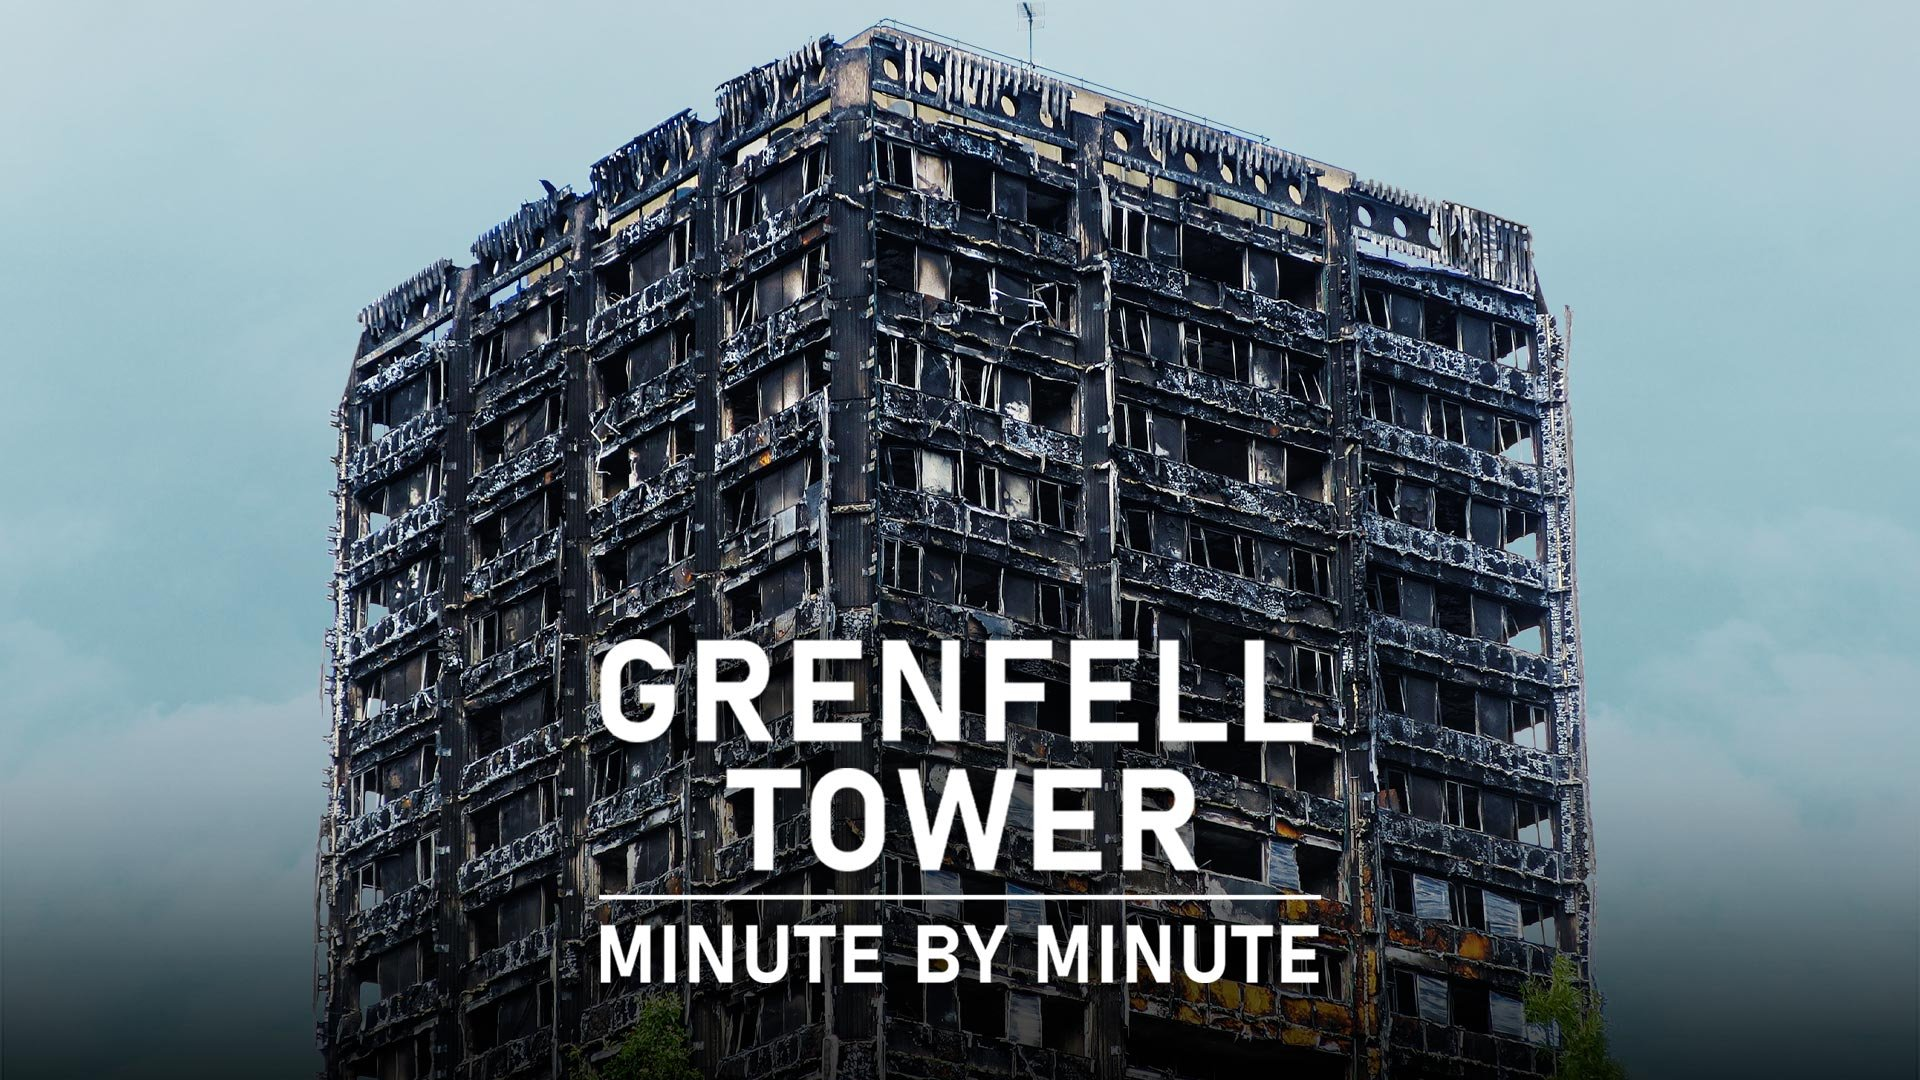 Grenfell Tower: Minute By Minute on BritBox UK